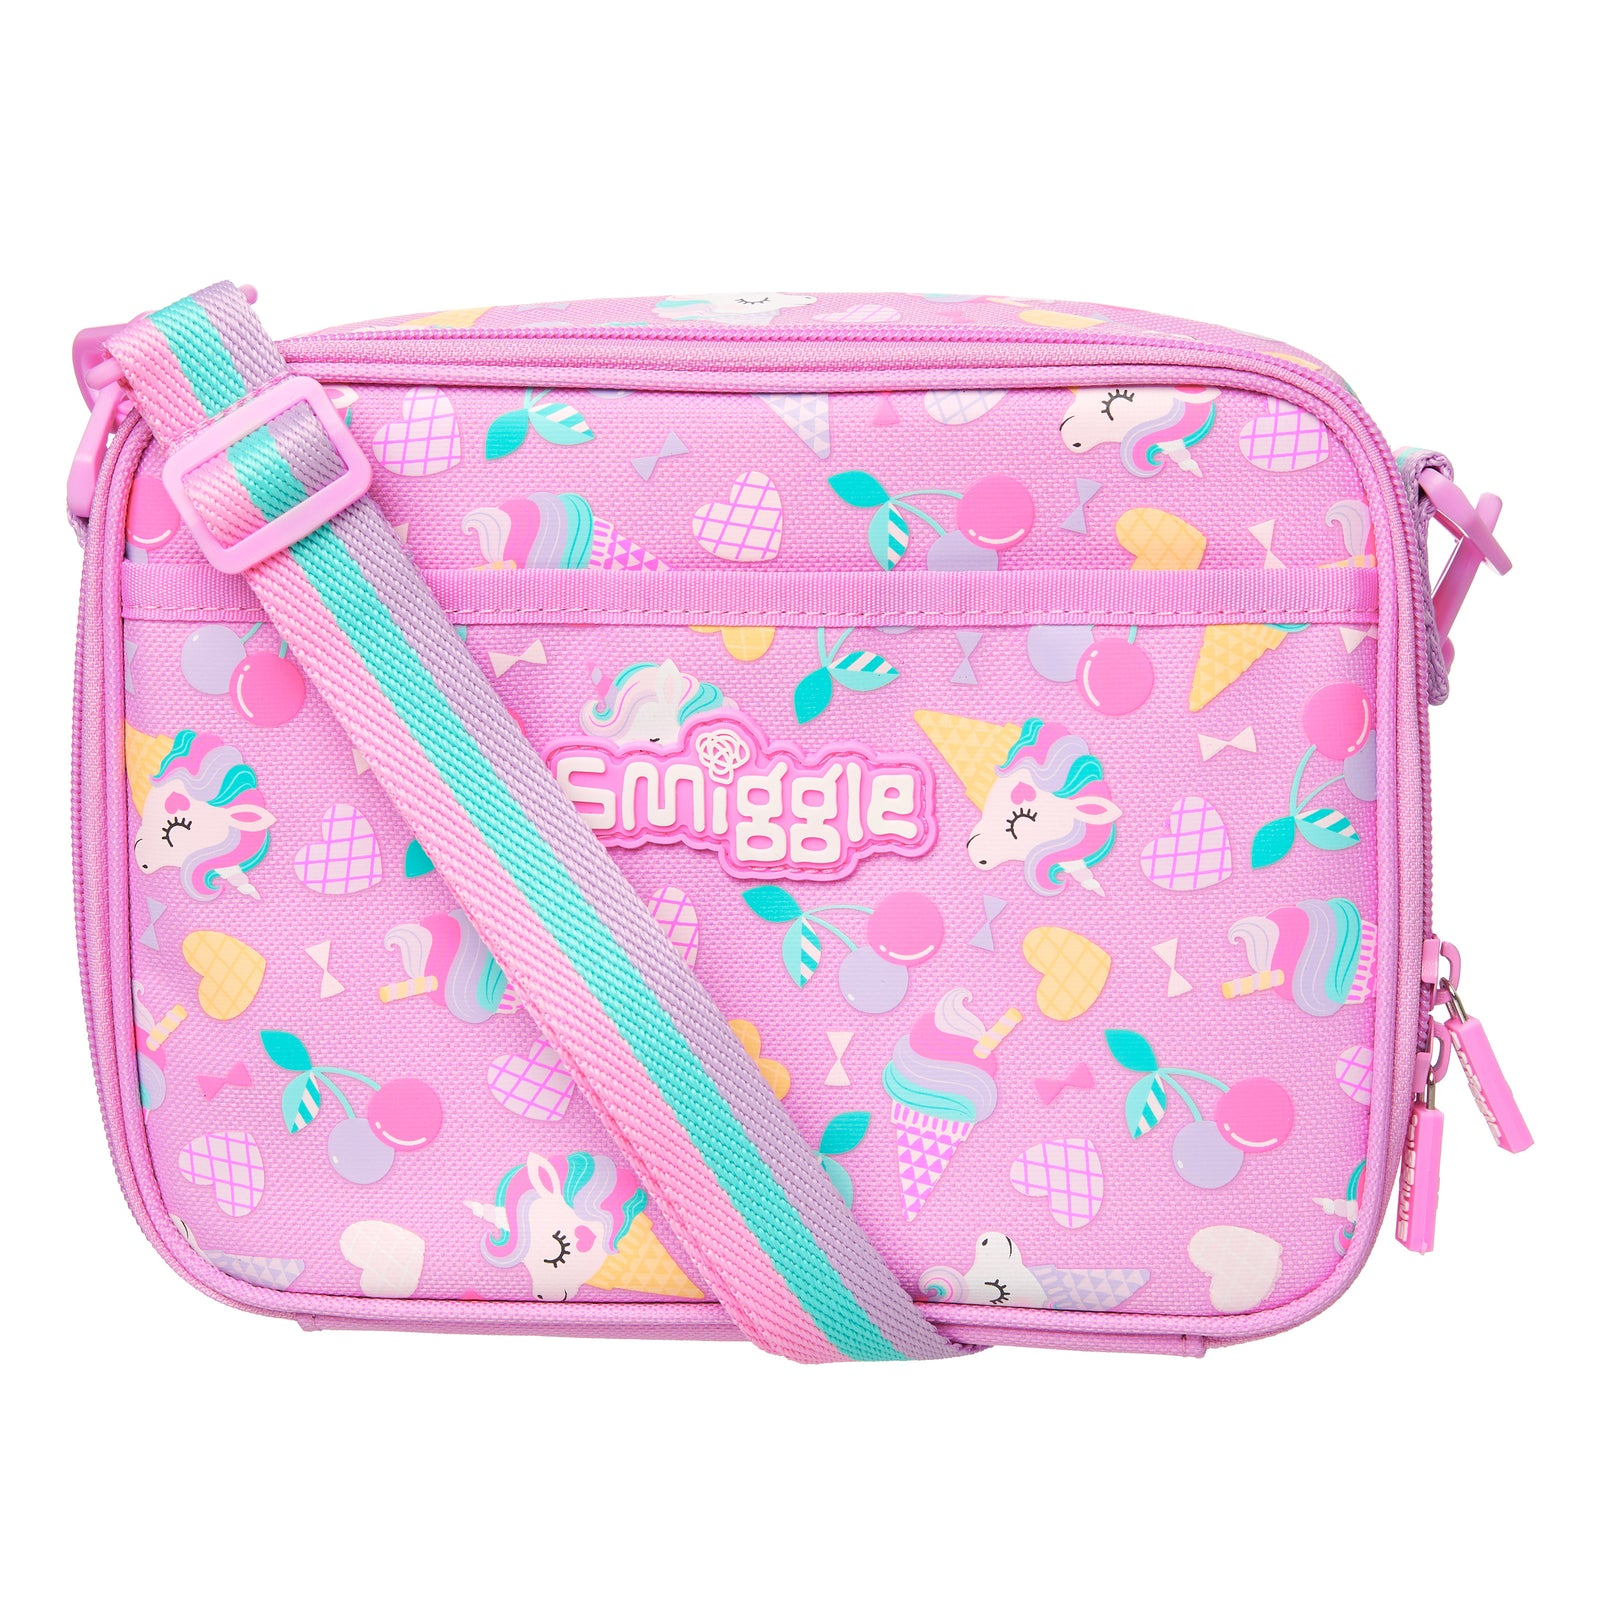 SMIGGLE - MAGIC TEENY TINY LUNCHBOX PINK - MyVaniteeCase